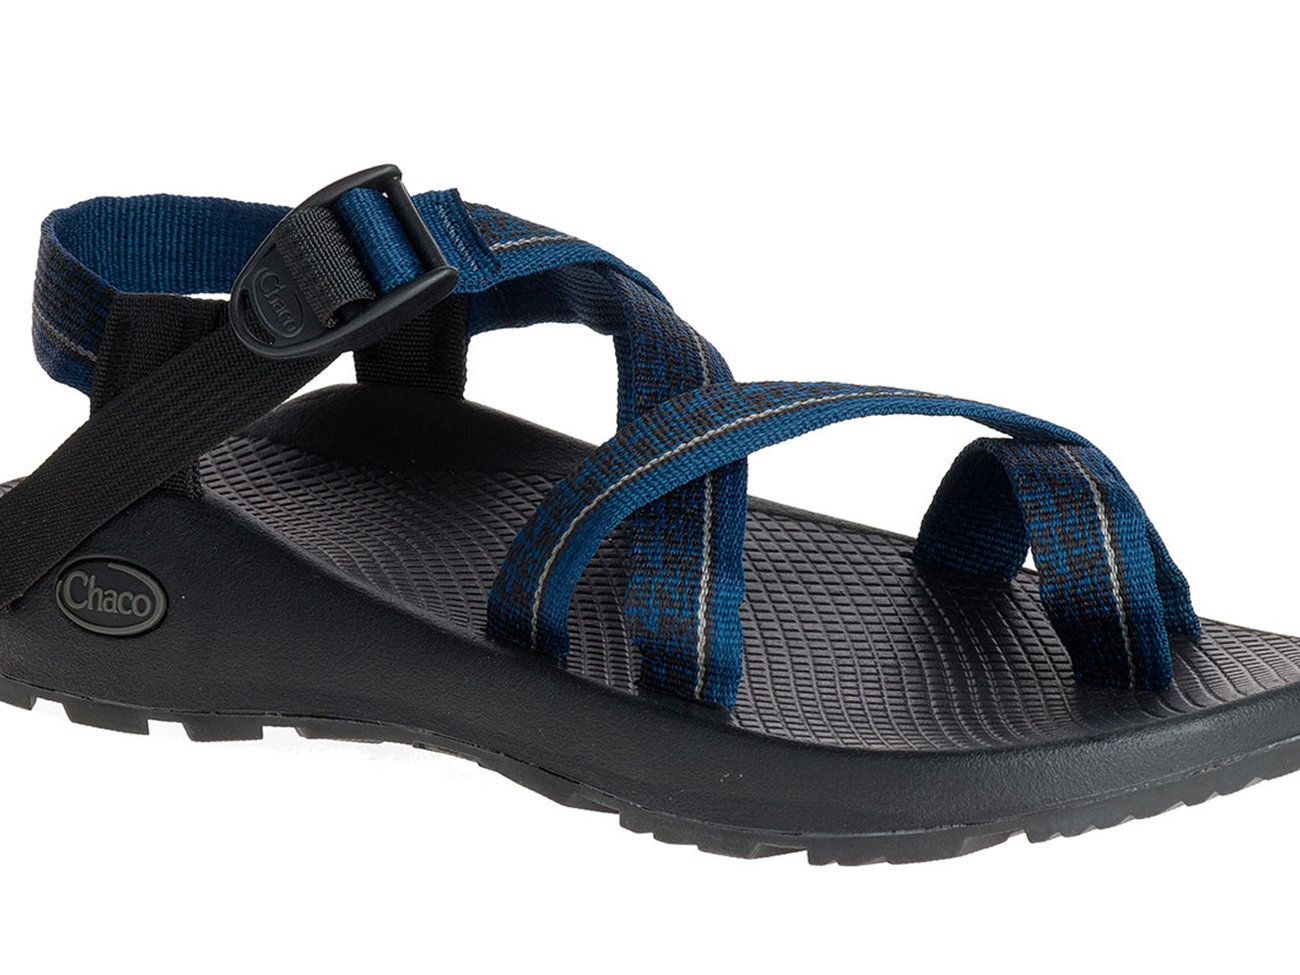 a010faeee4b Best Hiking Sandals for Men